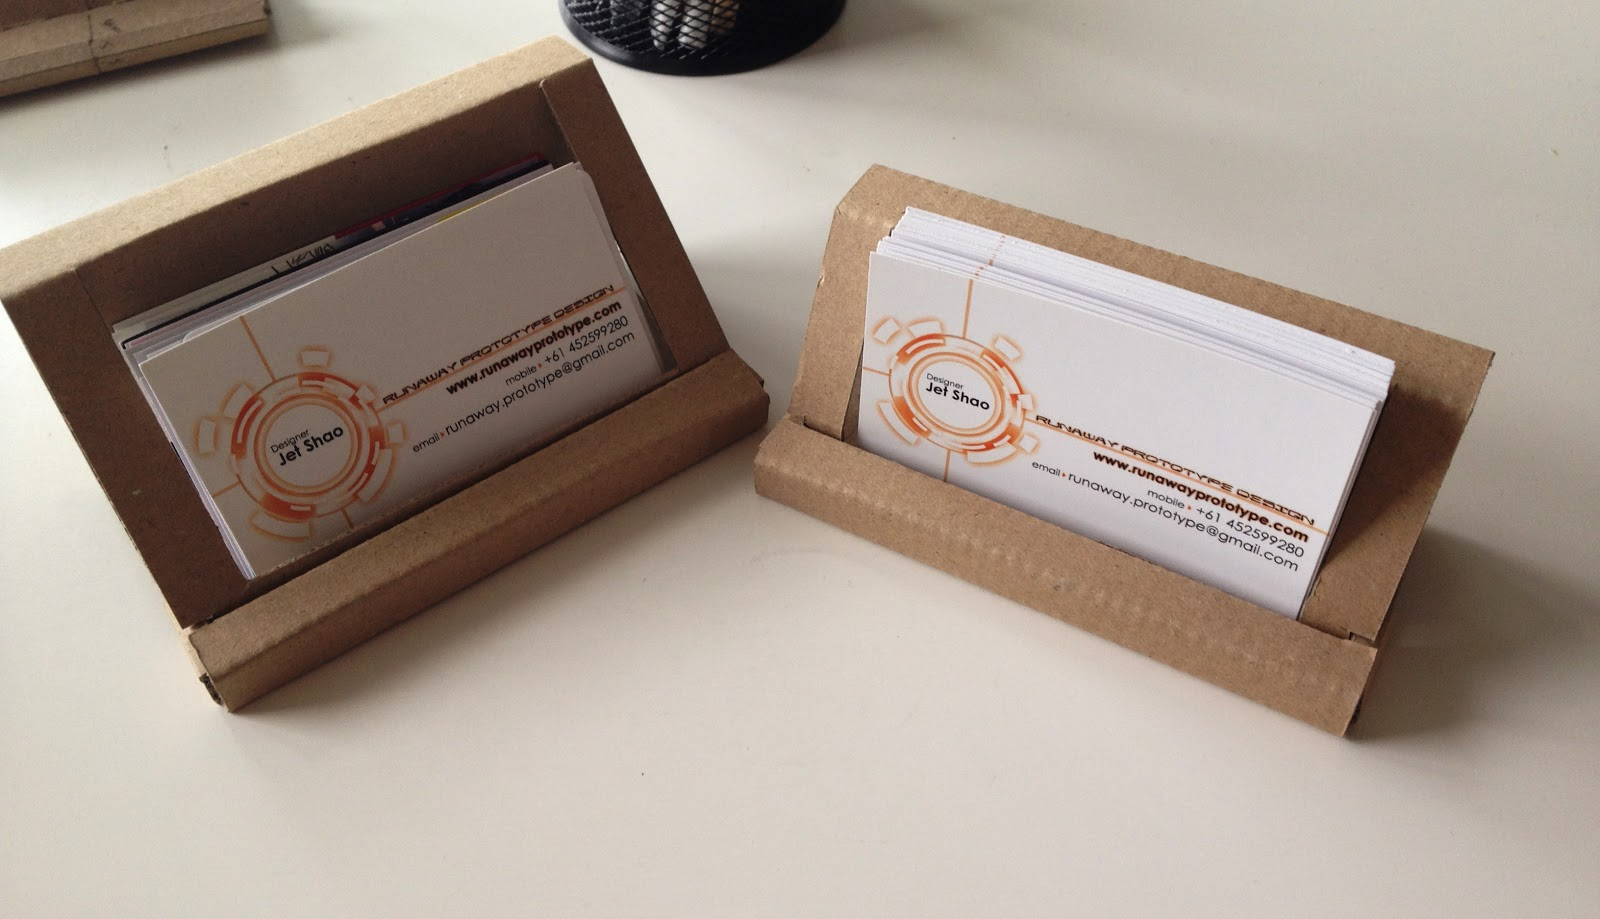 Cardboard business cards unlimitedgamers cardboard business card holders best business cards fbccfo Choice Image